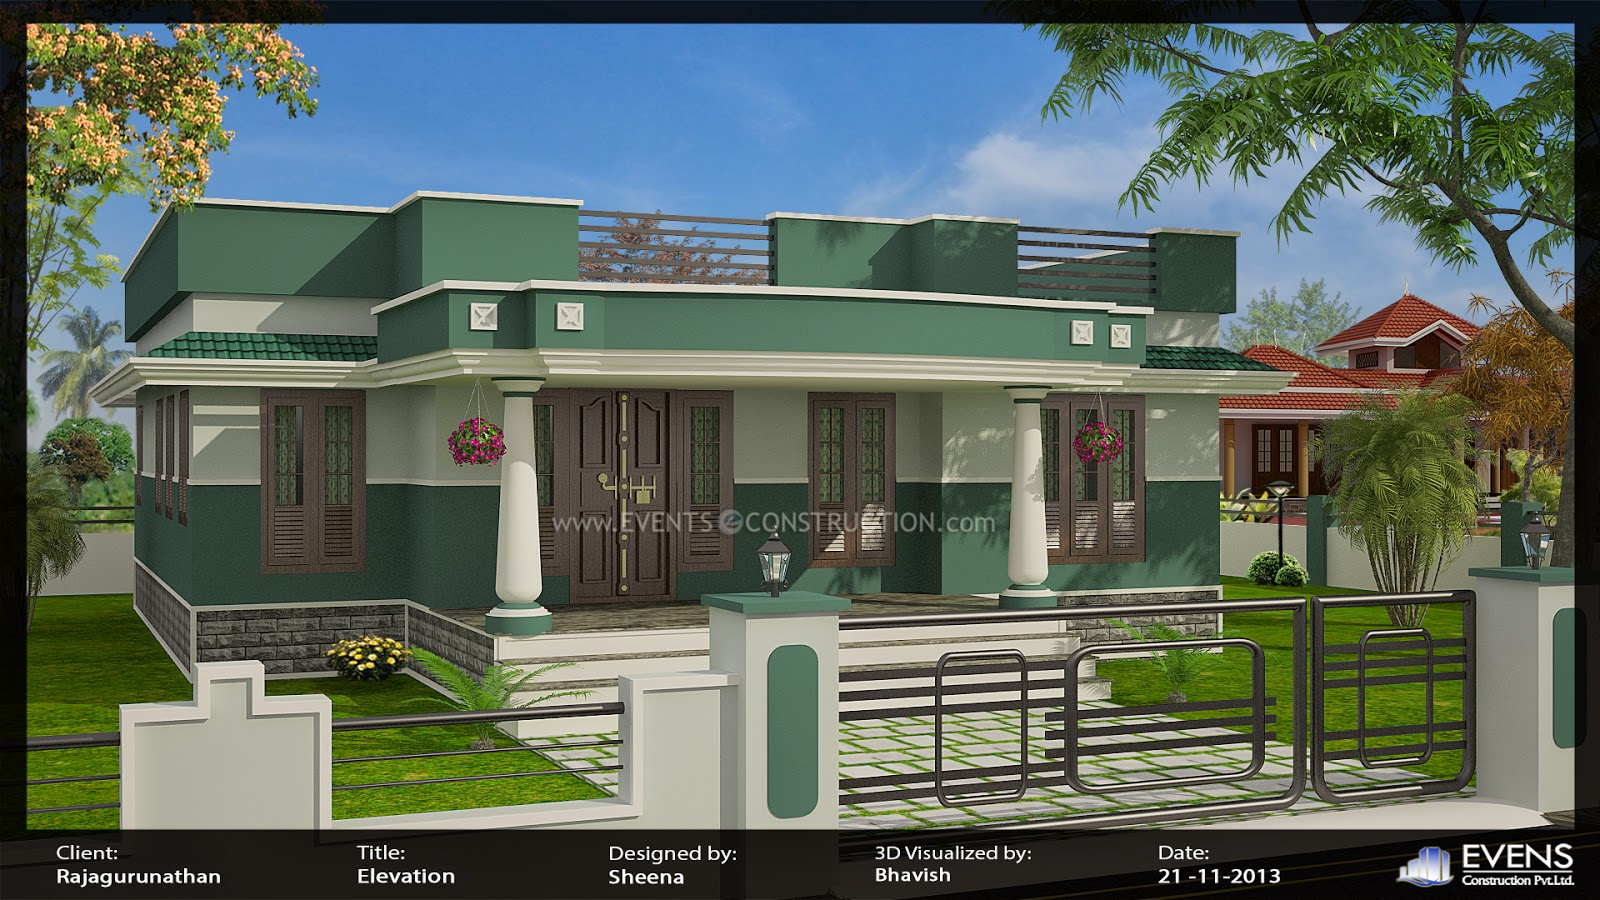 Evens construction pvt ltd tamilnadu style simple house for Window design tamilnadu